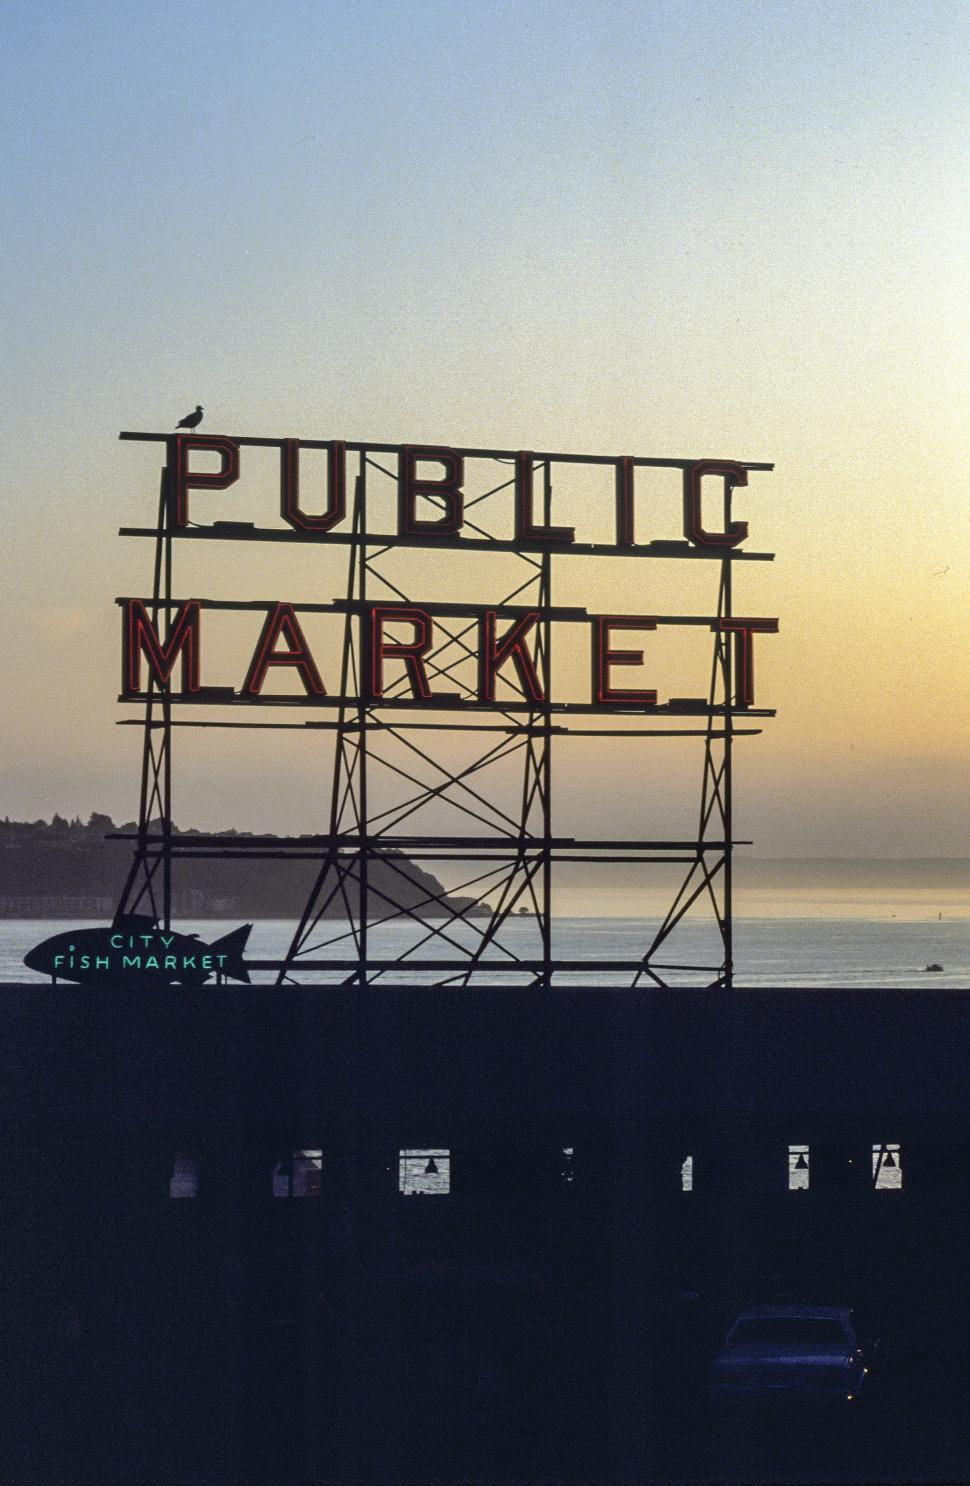 Download Free Stock HD Photo of Public Market Sign silhouette Online